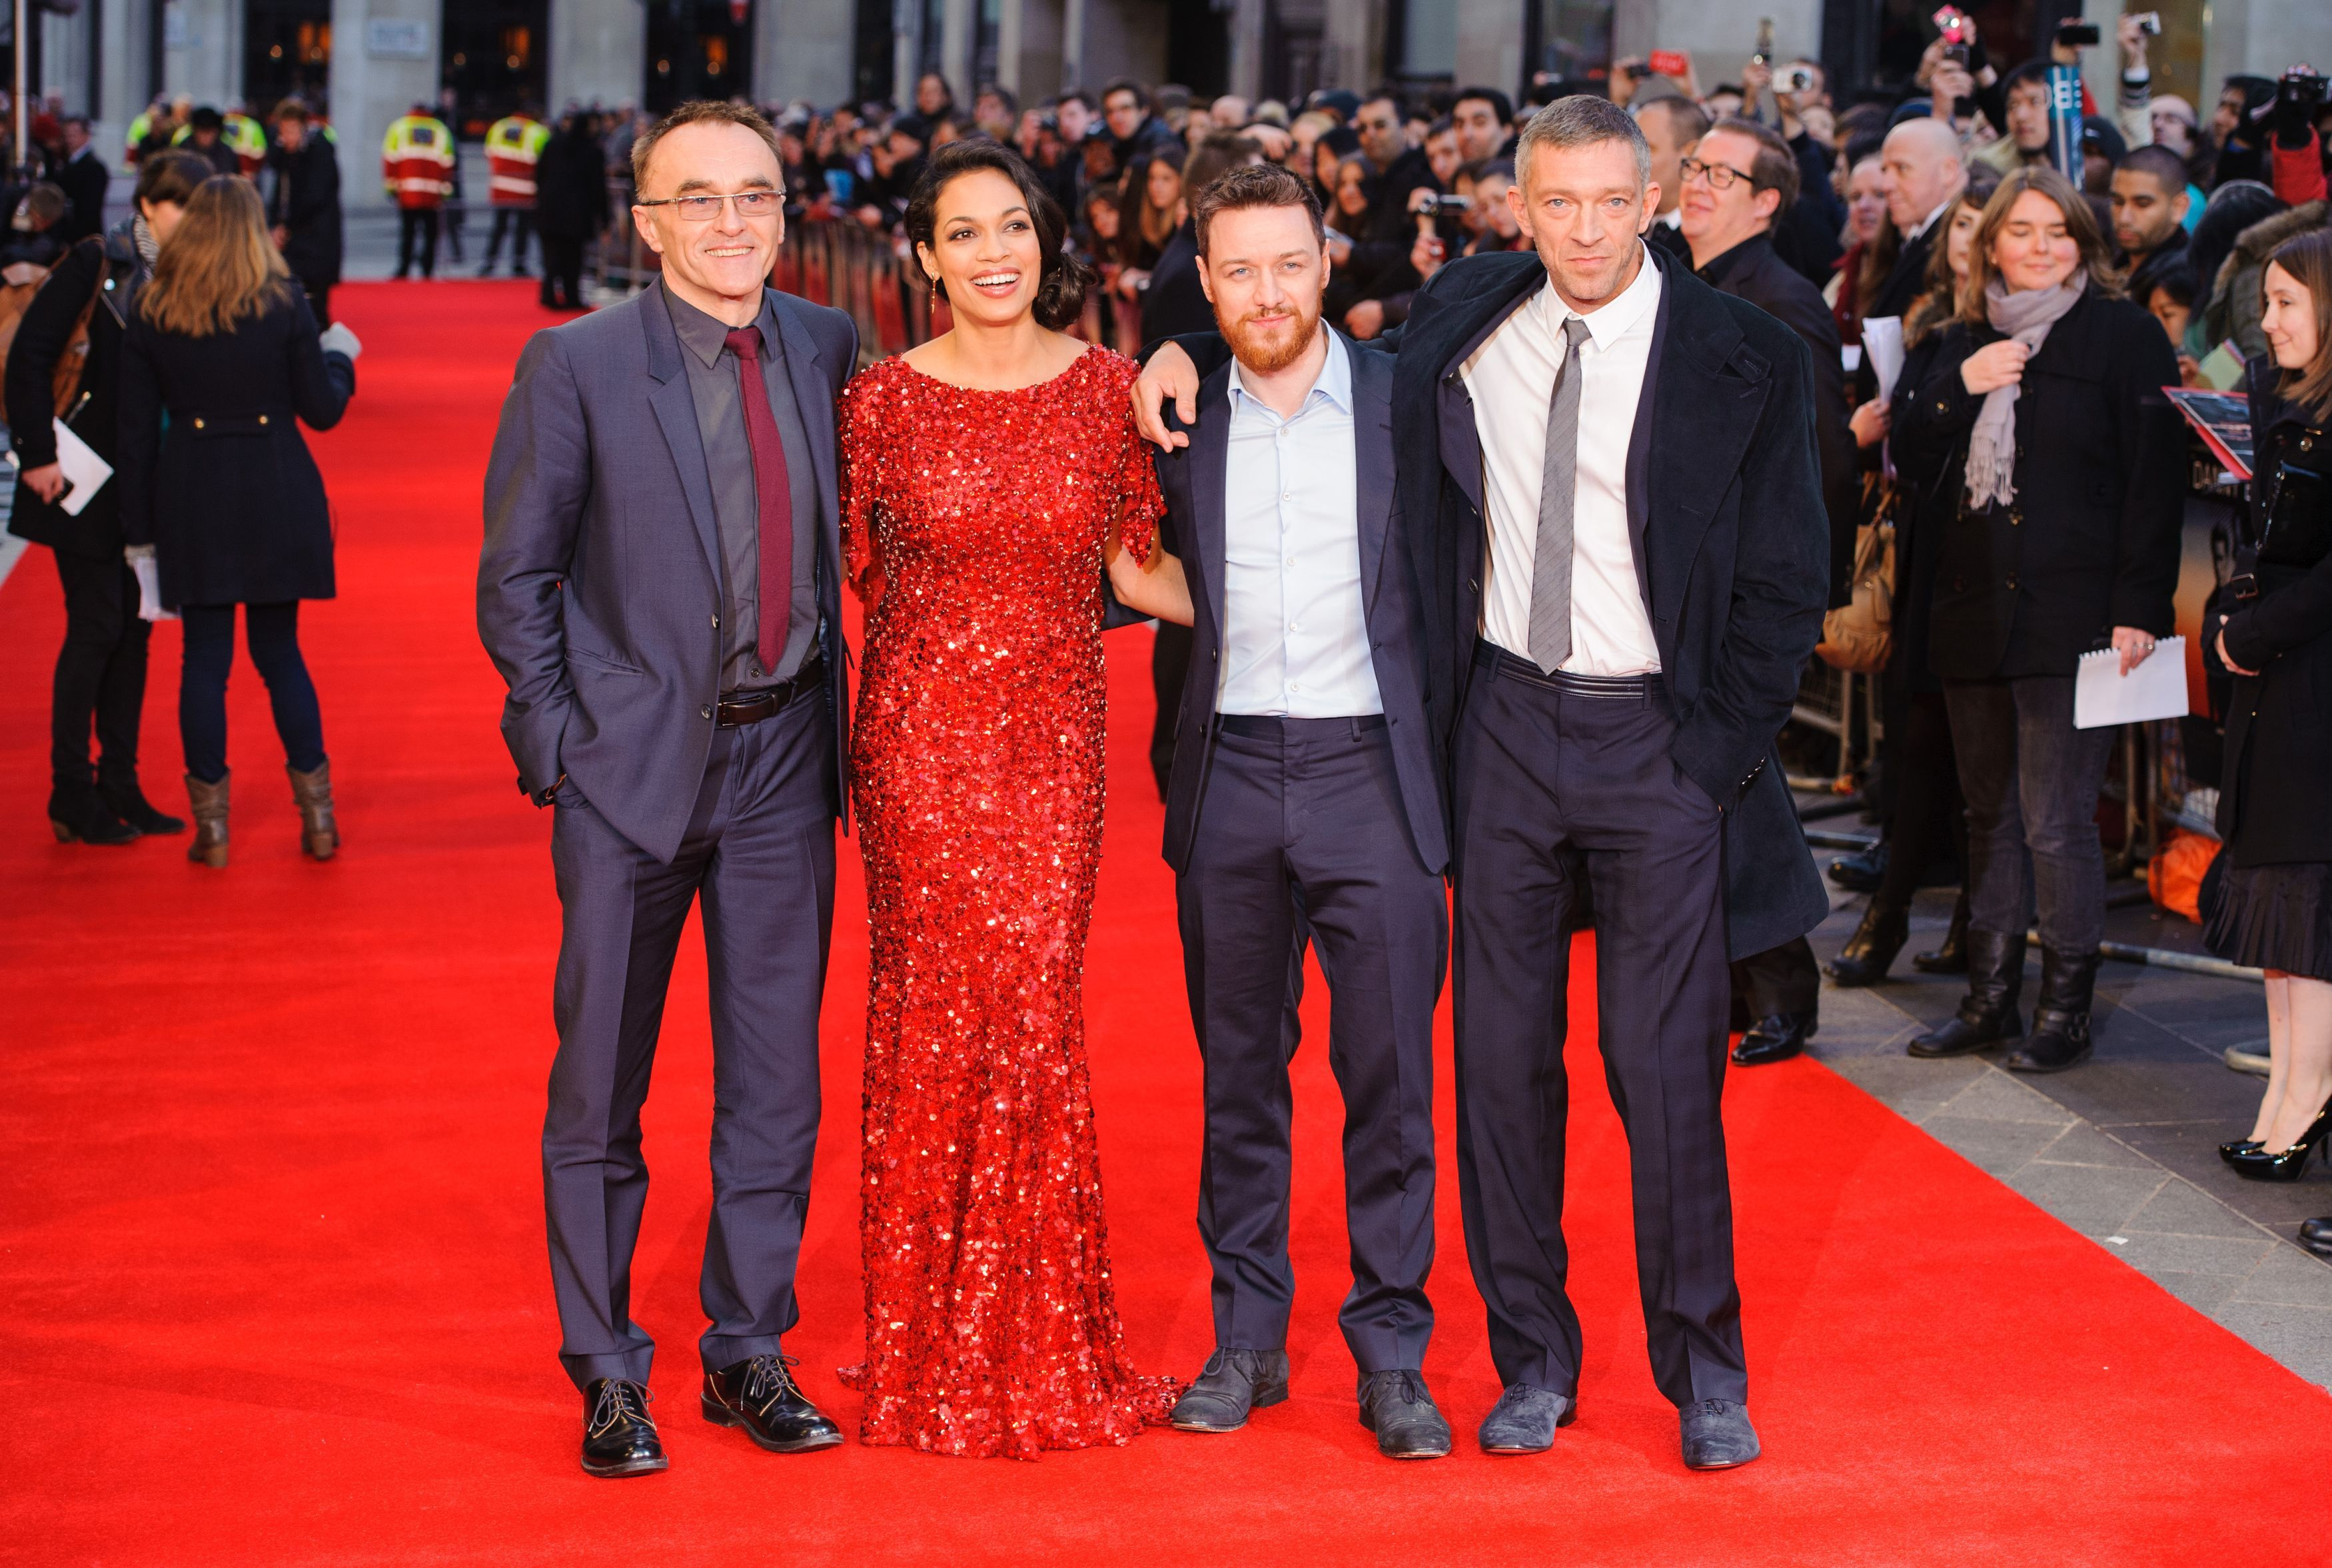 Danny boyle is he still dating rosario dawson